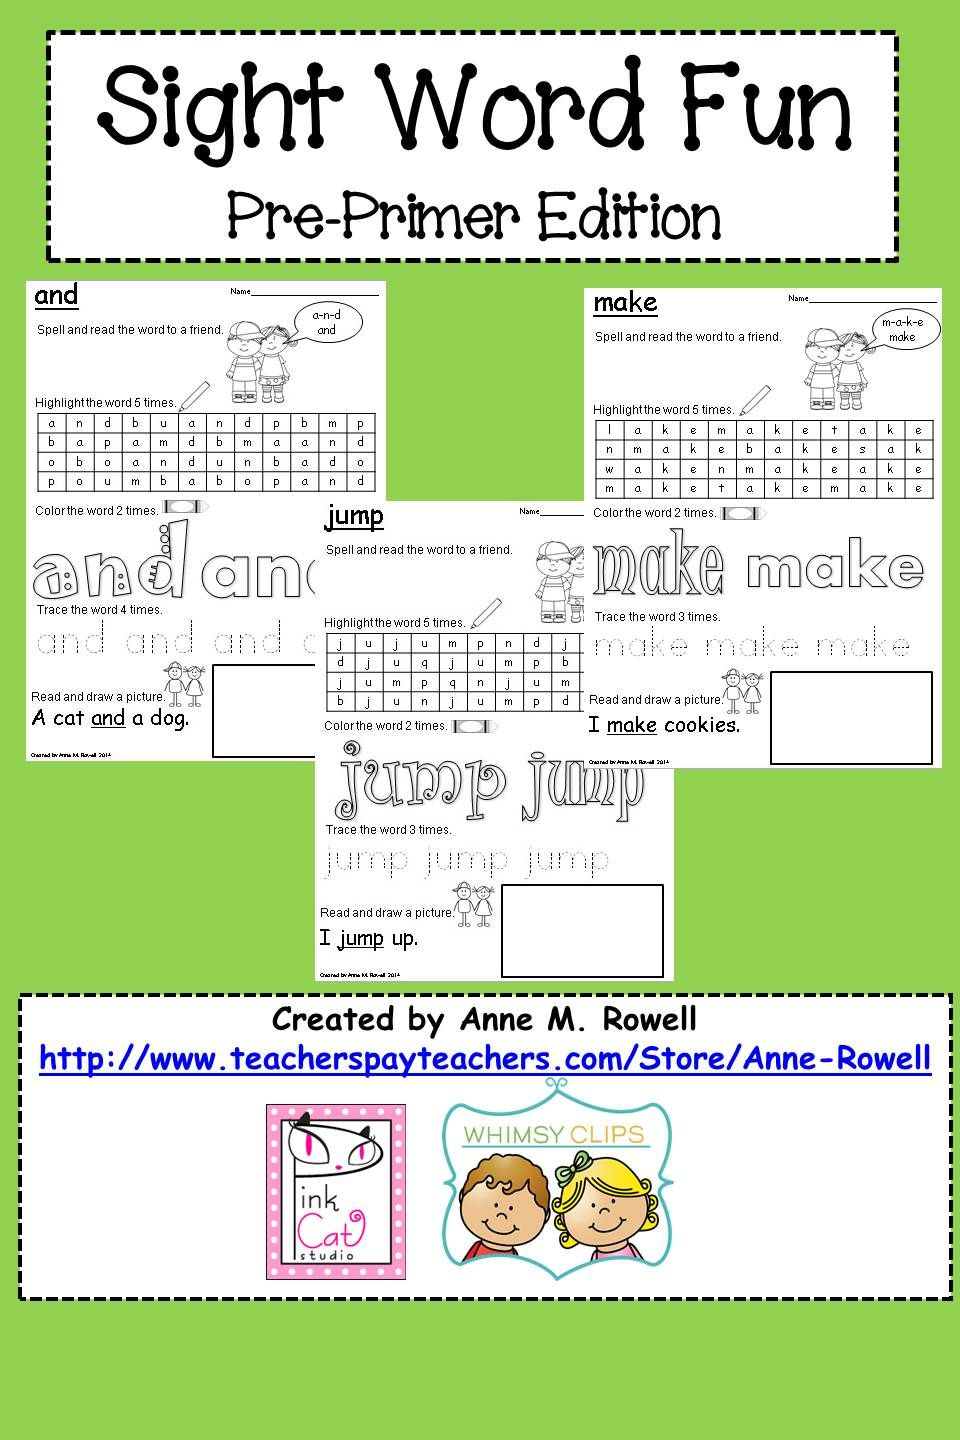 Sight Word Activity Worksheets: Pre-Primer Edition | Sight word ...